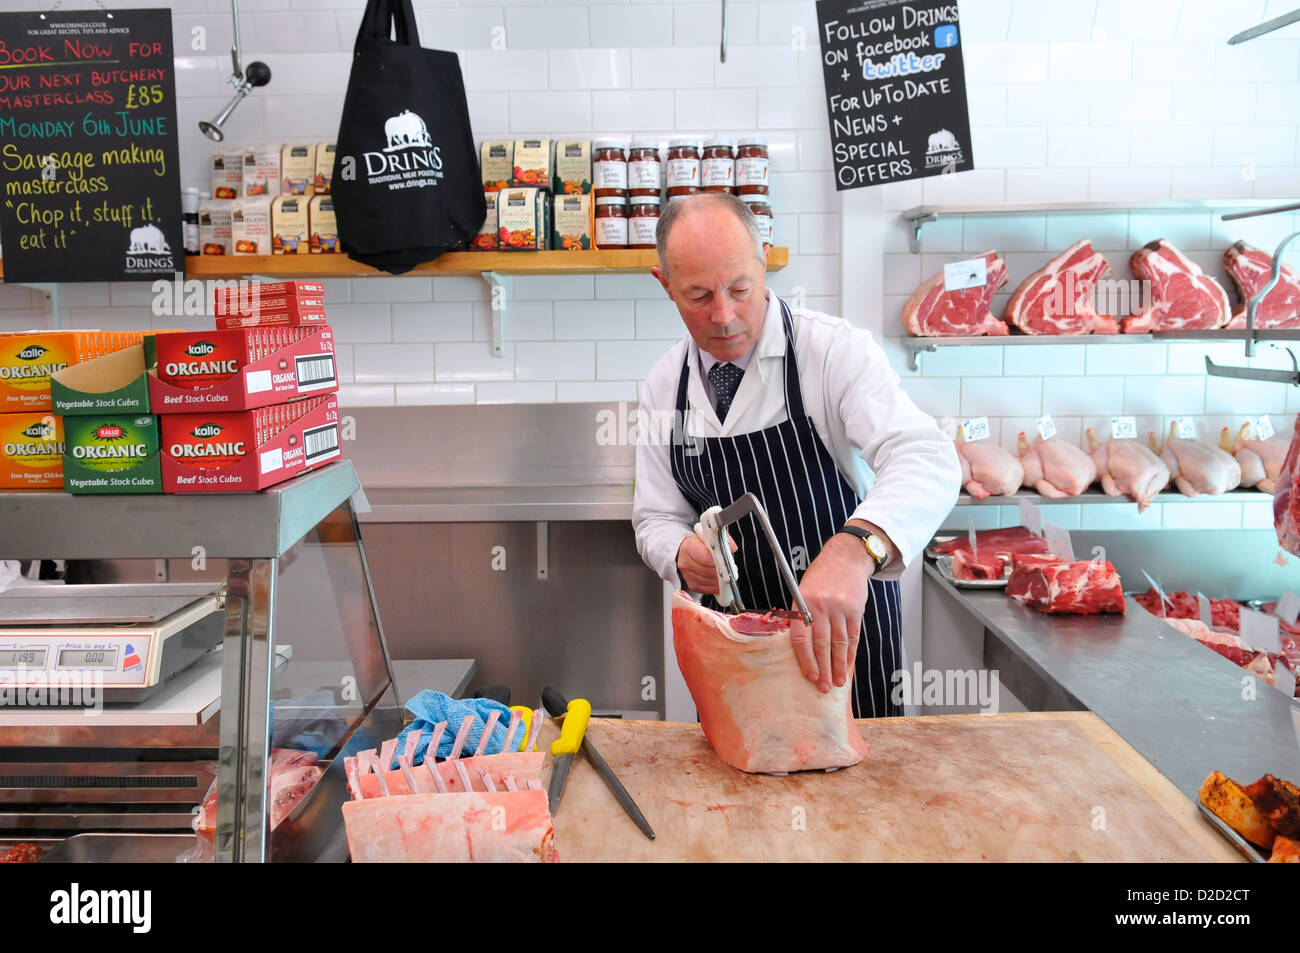 Butcher cutting meat at Drings Butchers, Royal Hill, Greenwich, South London, London, England, UK - Stock Image